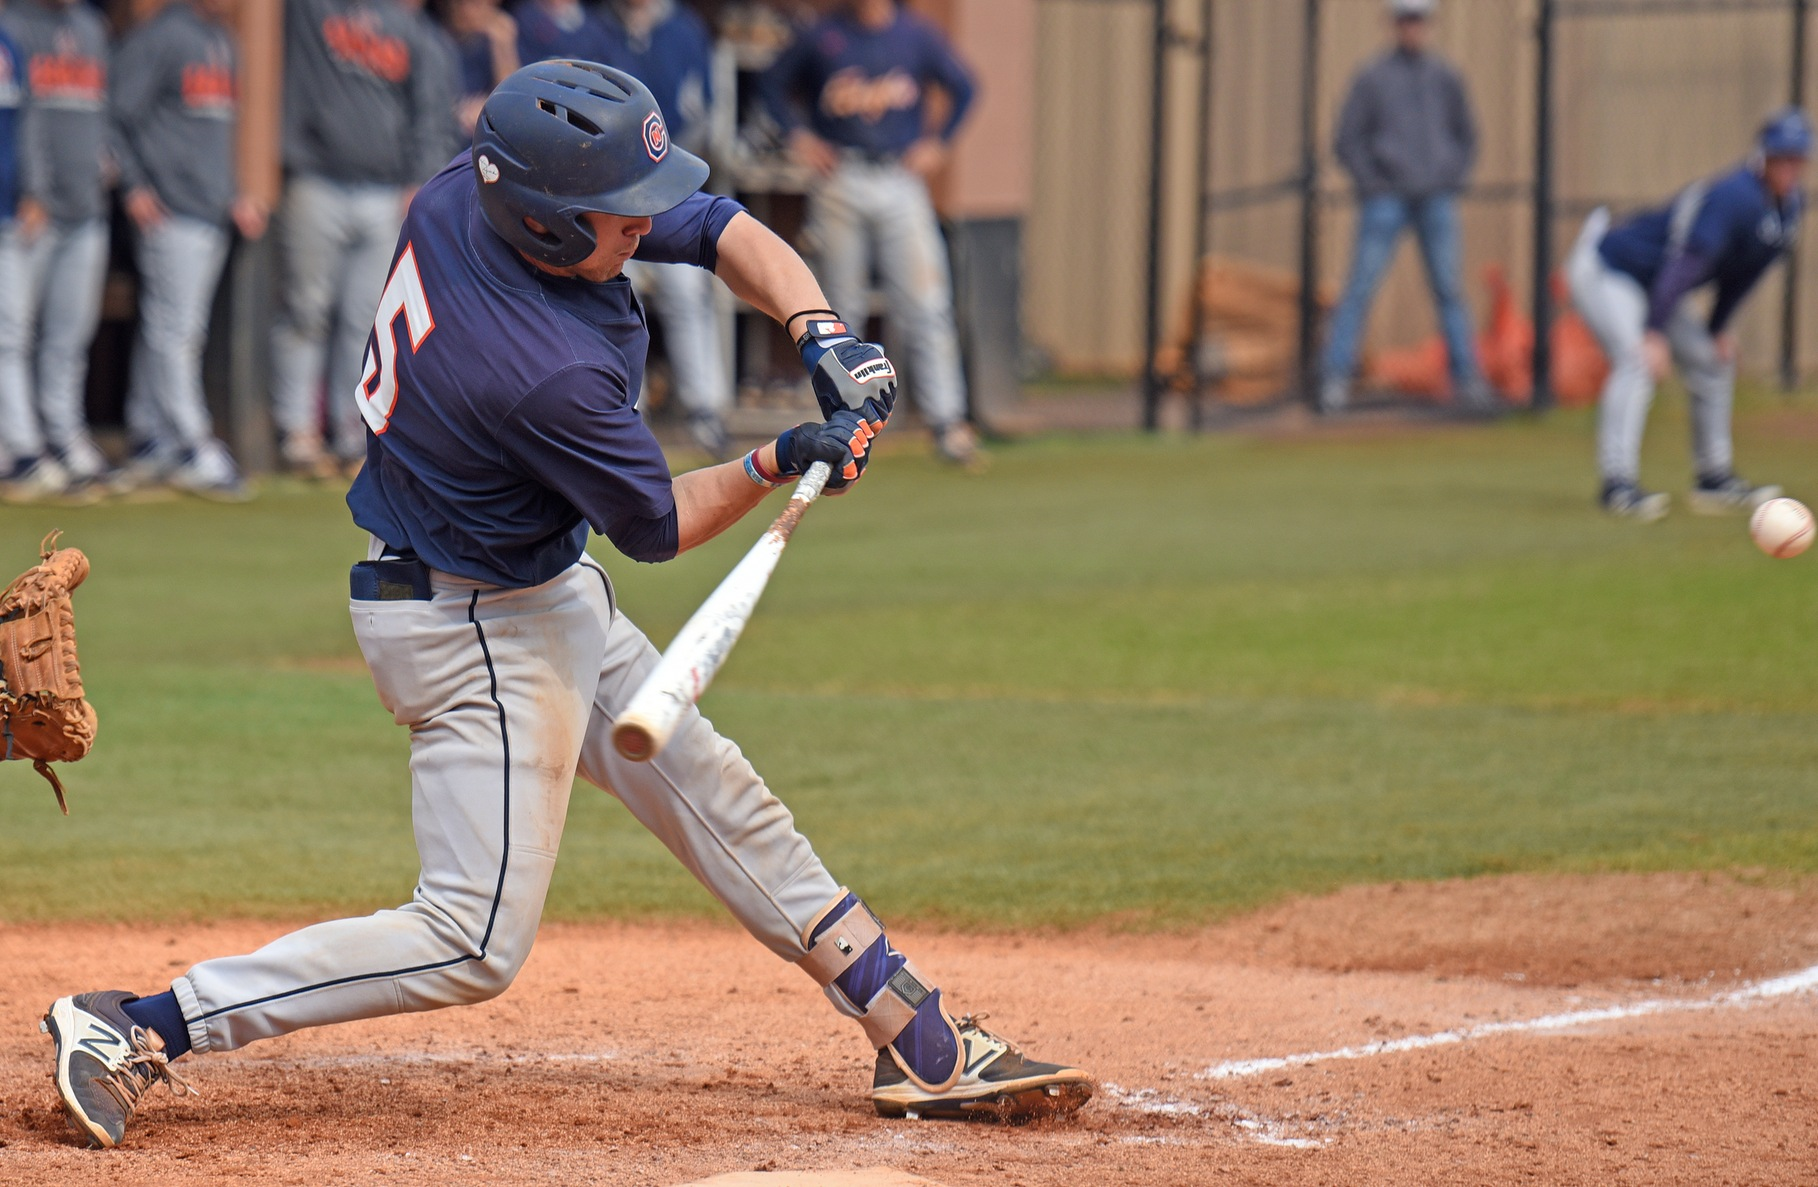 Situational hitting, Cate's pitching carry Eagles to 9-6 triumph over Anderson